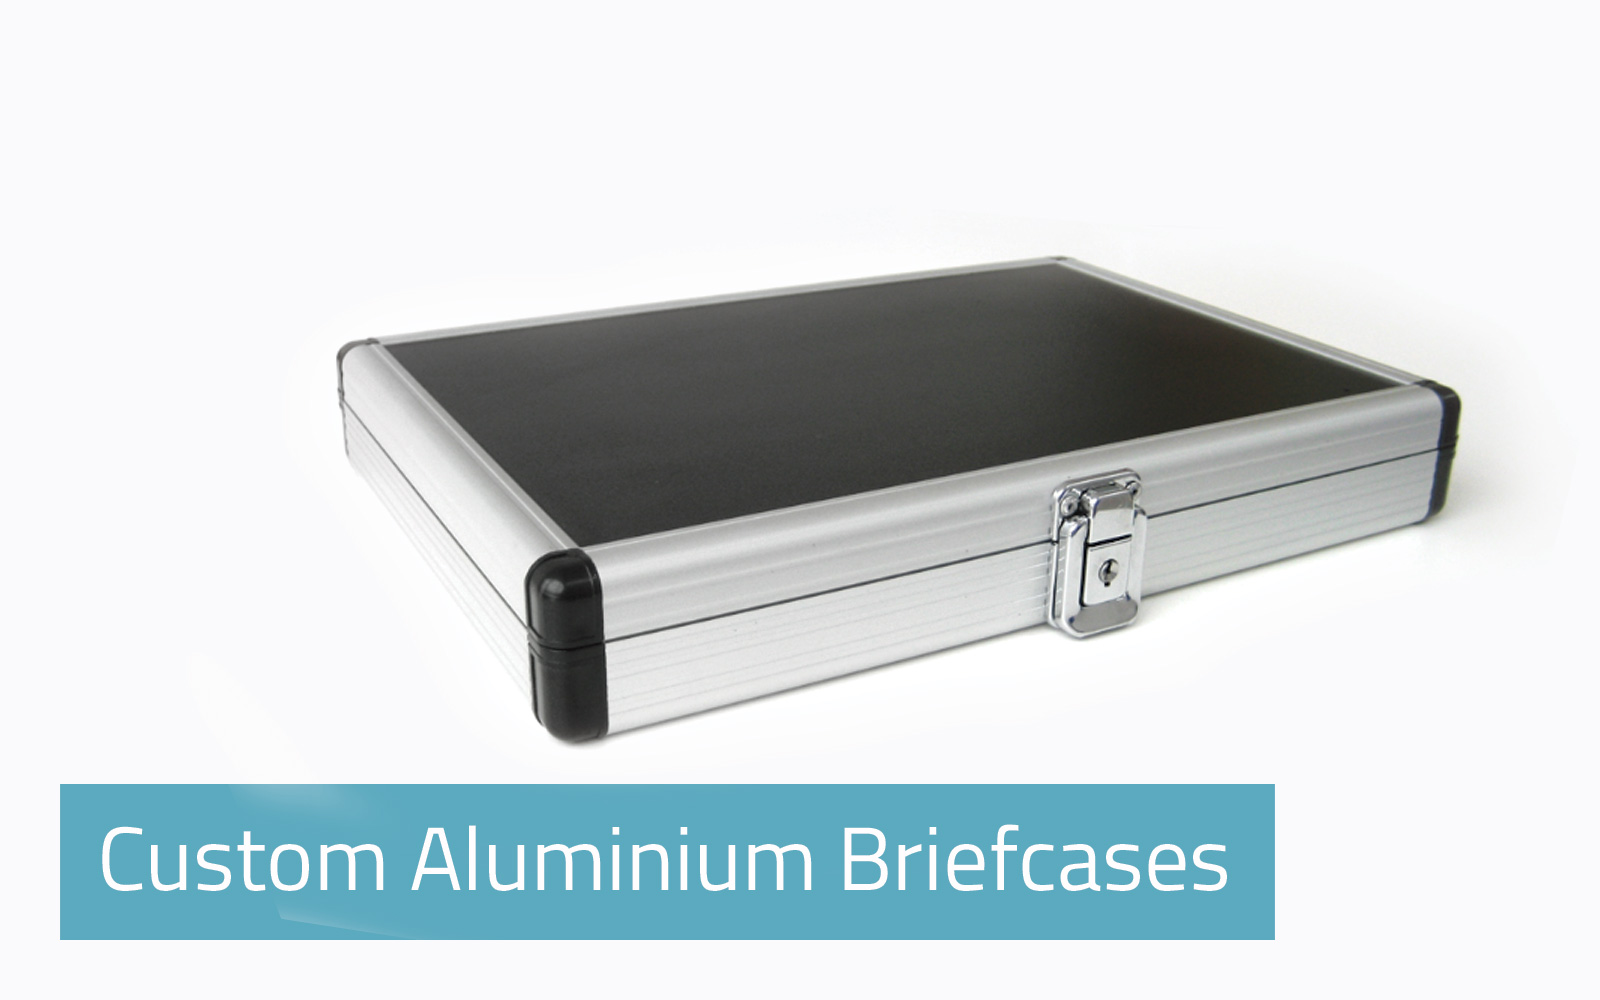 More about Custom Aluminium Briefcases